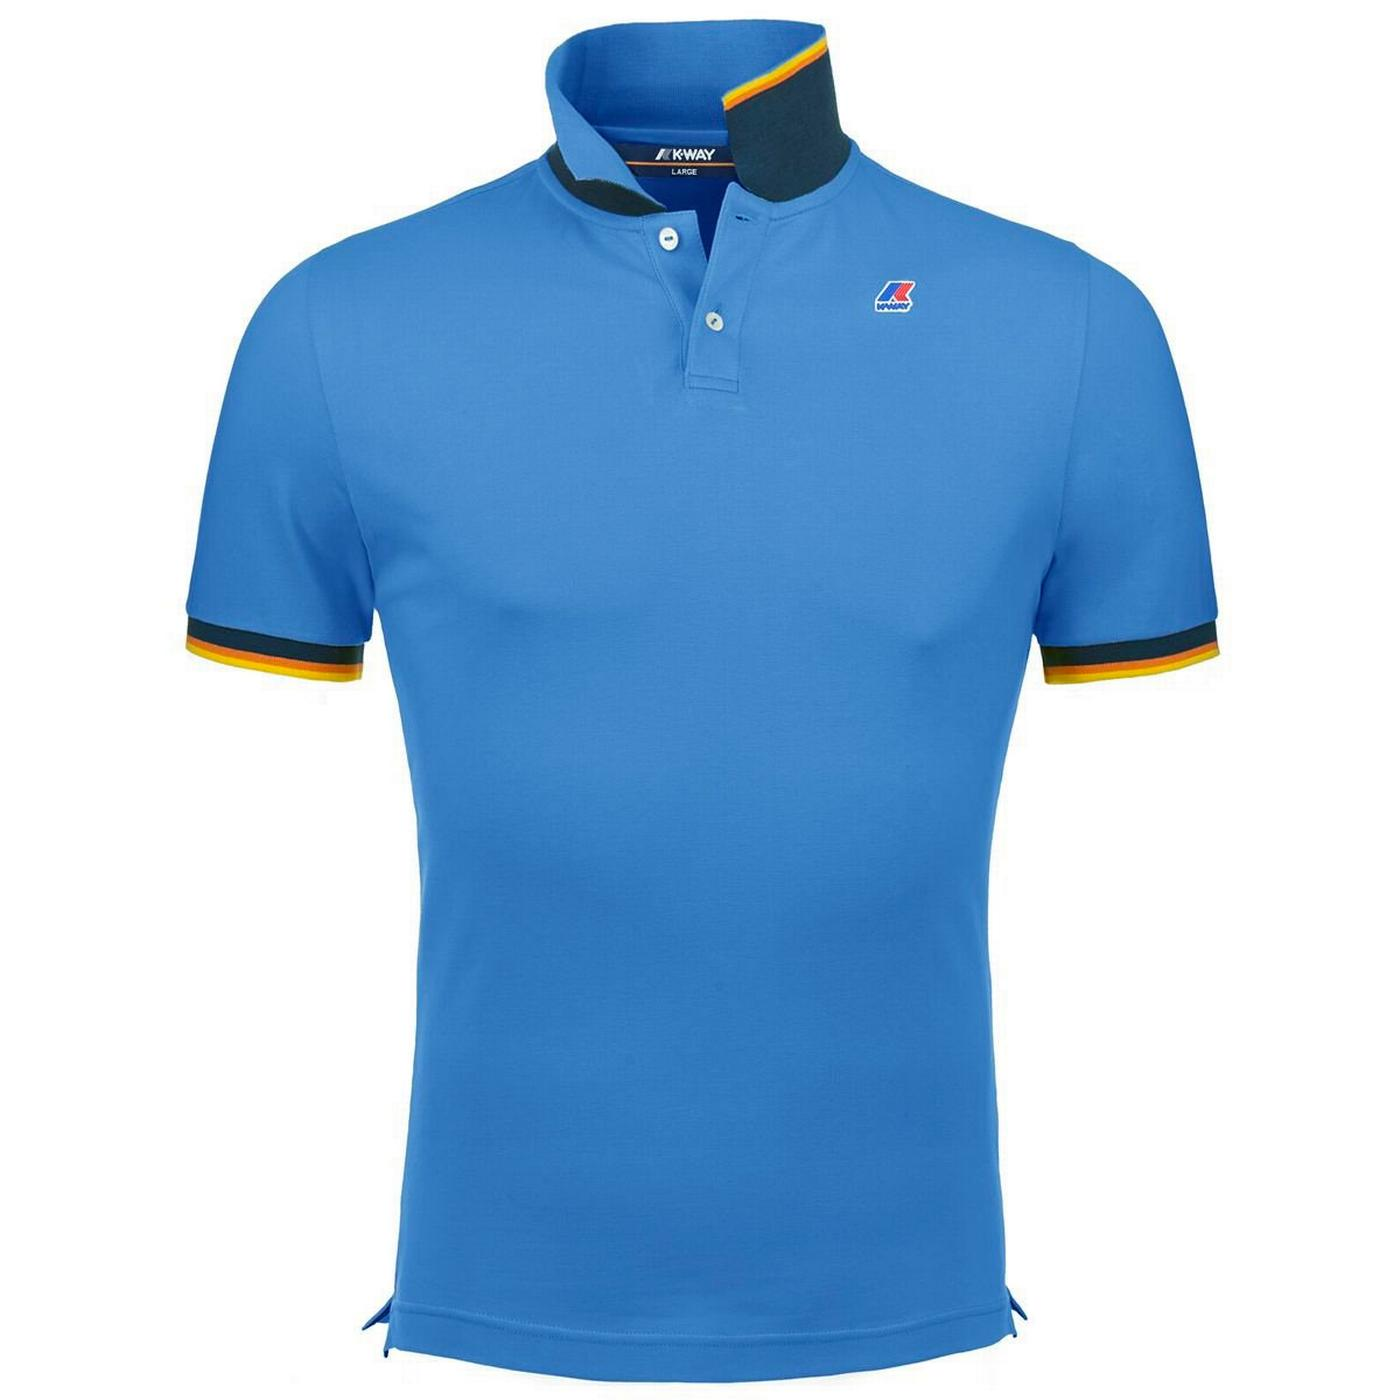 Vincent K-WAY Retro Mod Pique Polo Top (Blue Avio)